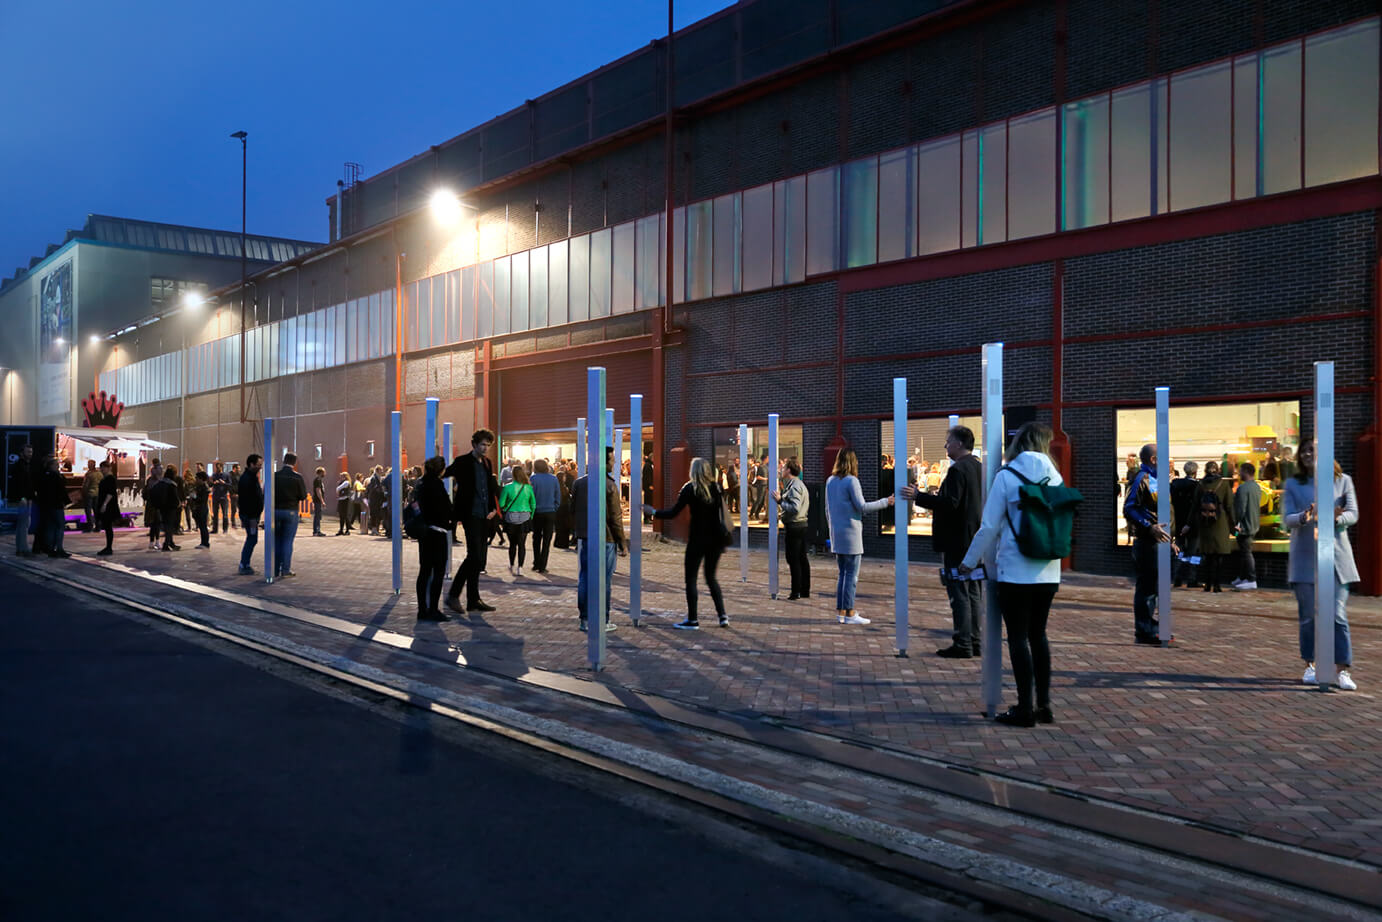 Future Flux Festival, photo by Aad Hoogendoorn